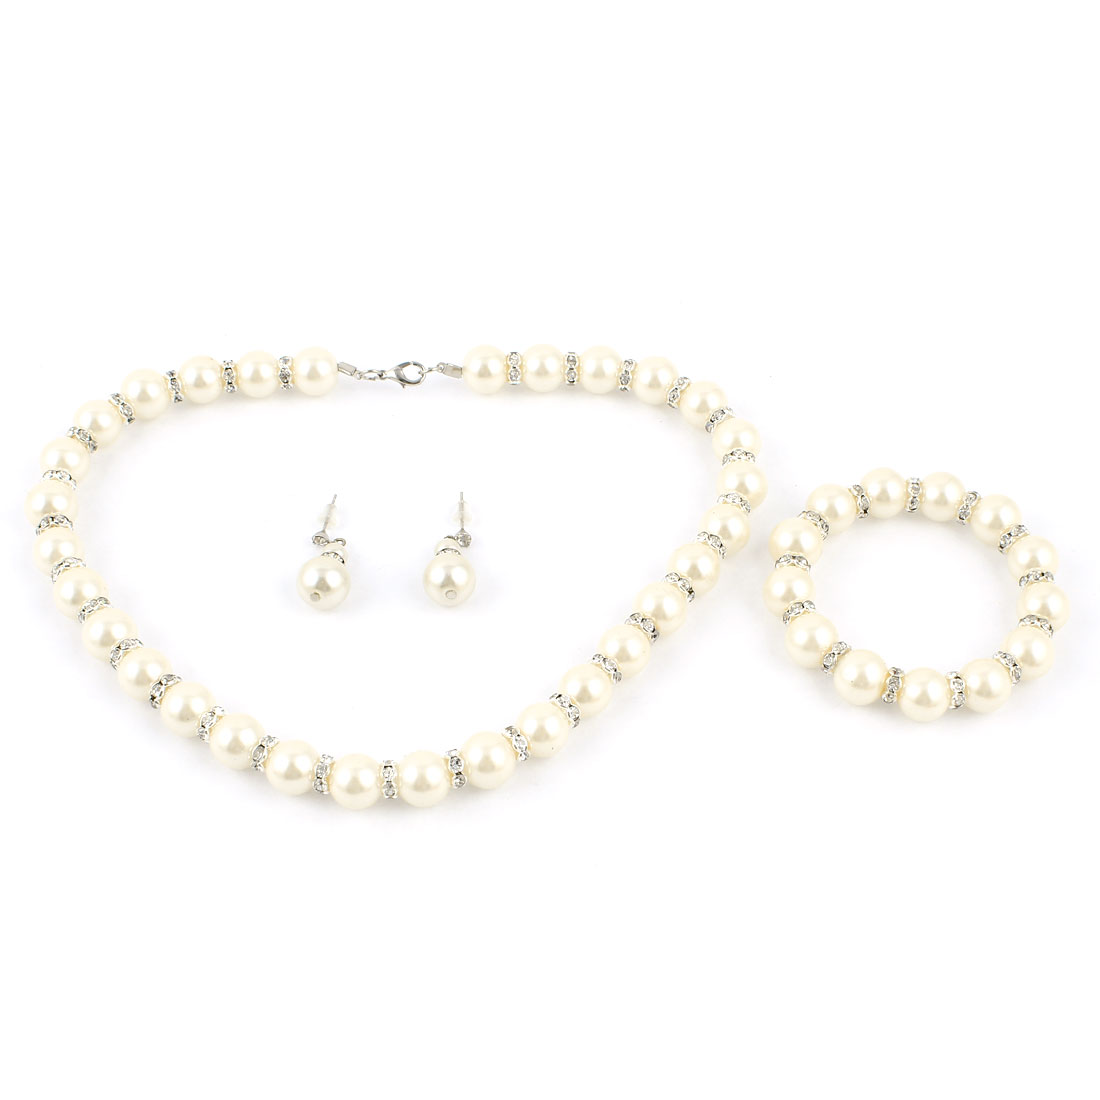 3 in 1 Wedding 12mm Dia Ivory Color Imitation Pearls Necklace Clip Earrings Jewelry Set